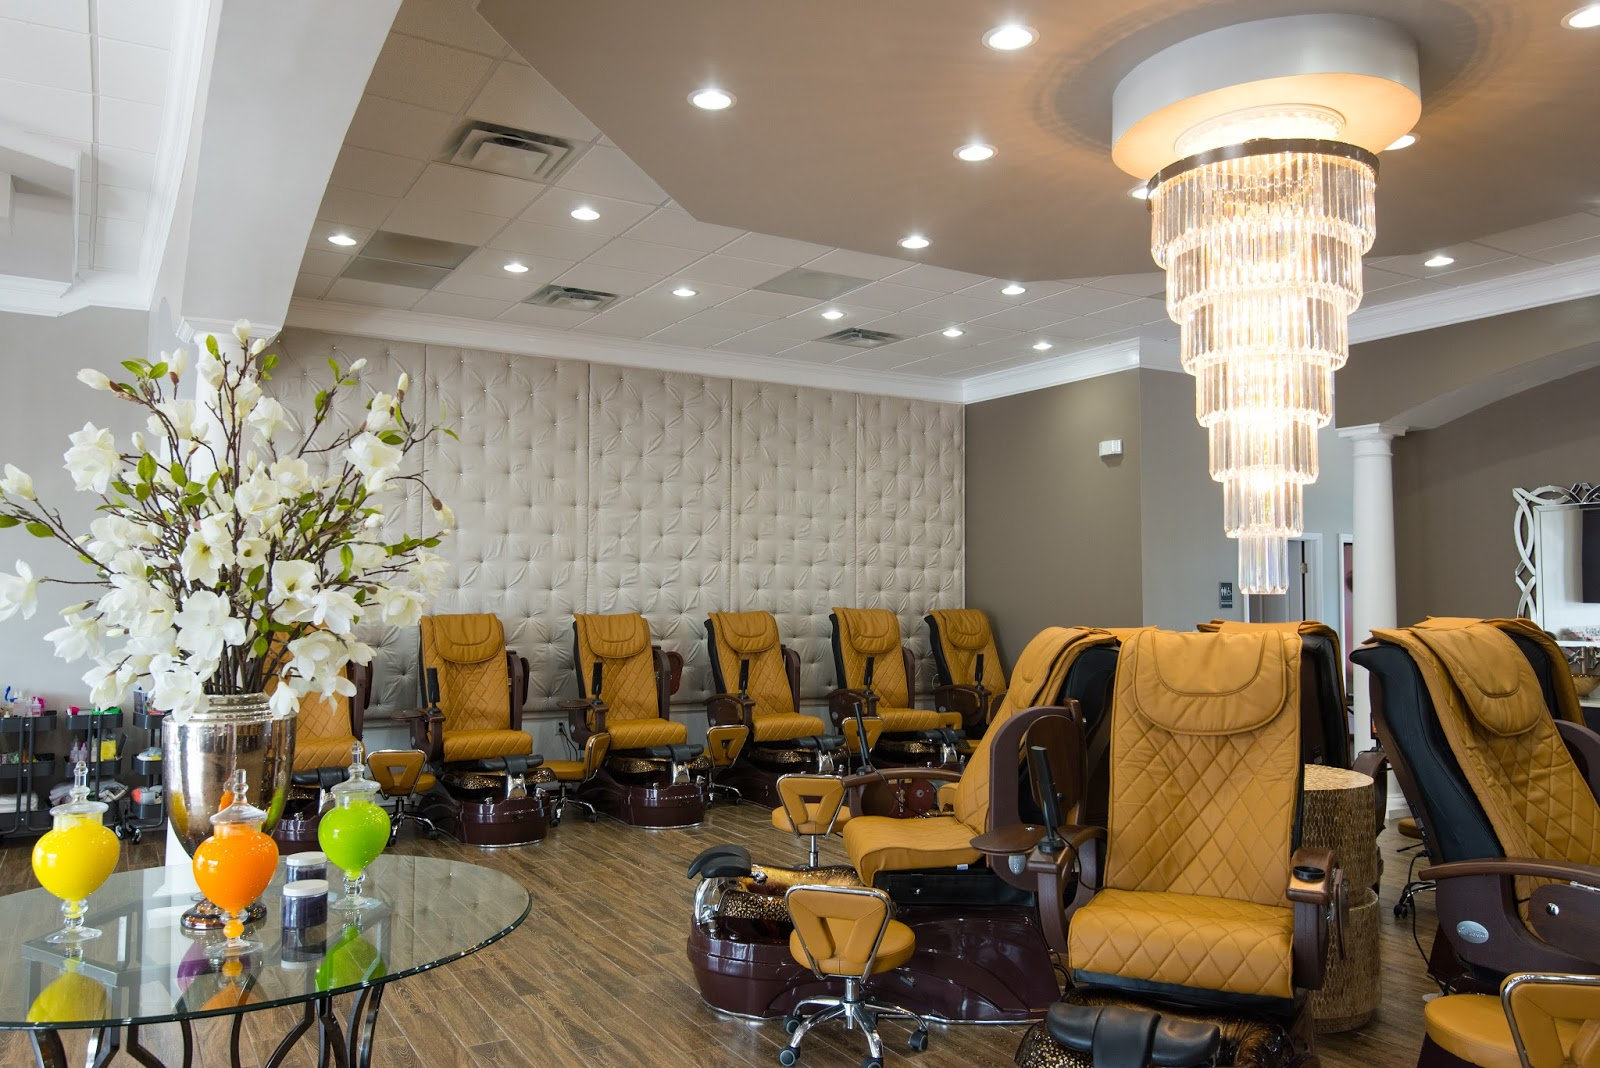 A Little Posh Pampering Anyone? Magnolia Nails in Cornelius Should ...